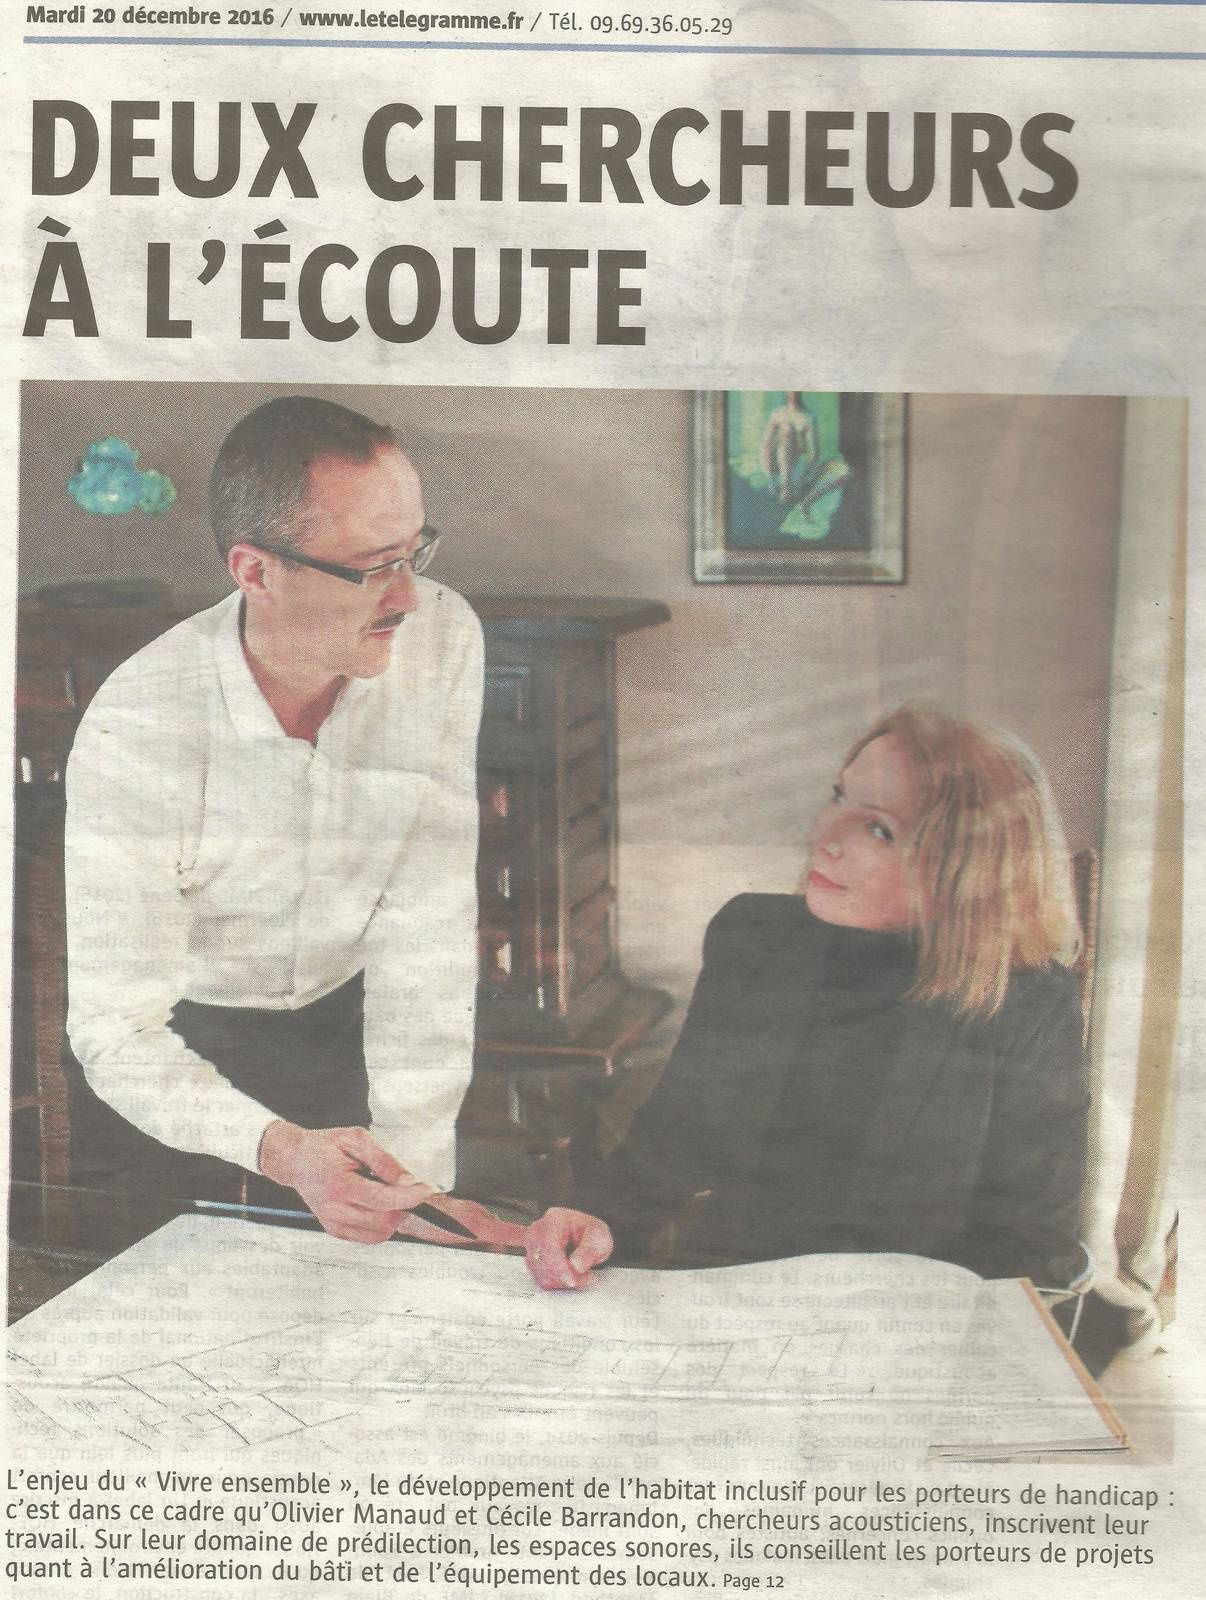 Article dans le journal LE TELEGRAMME